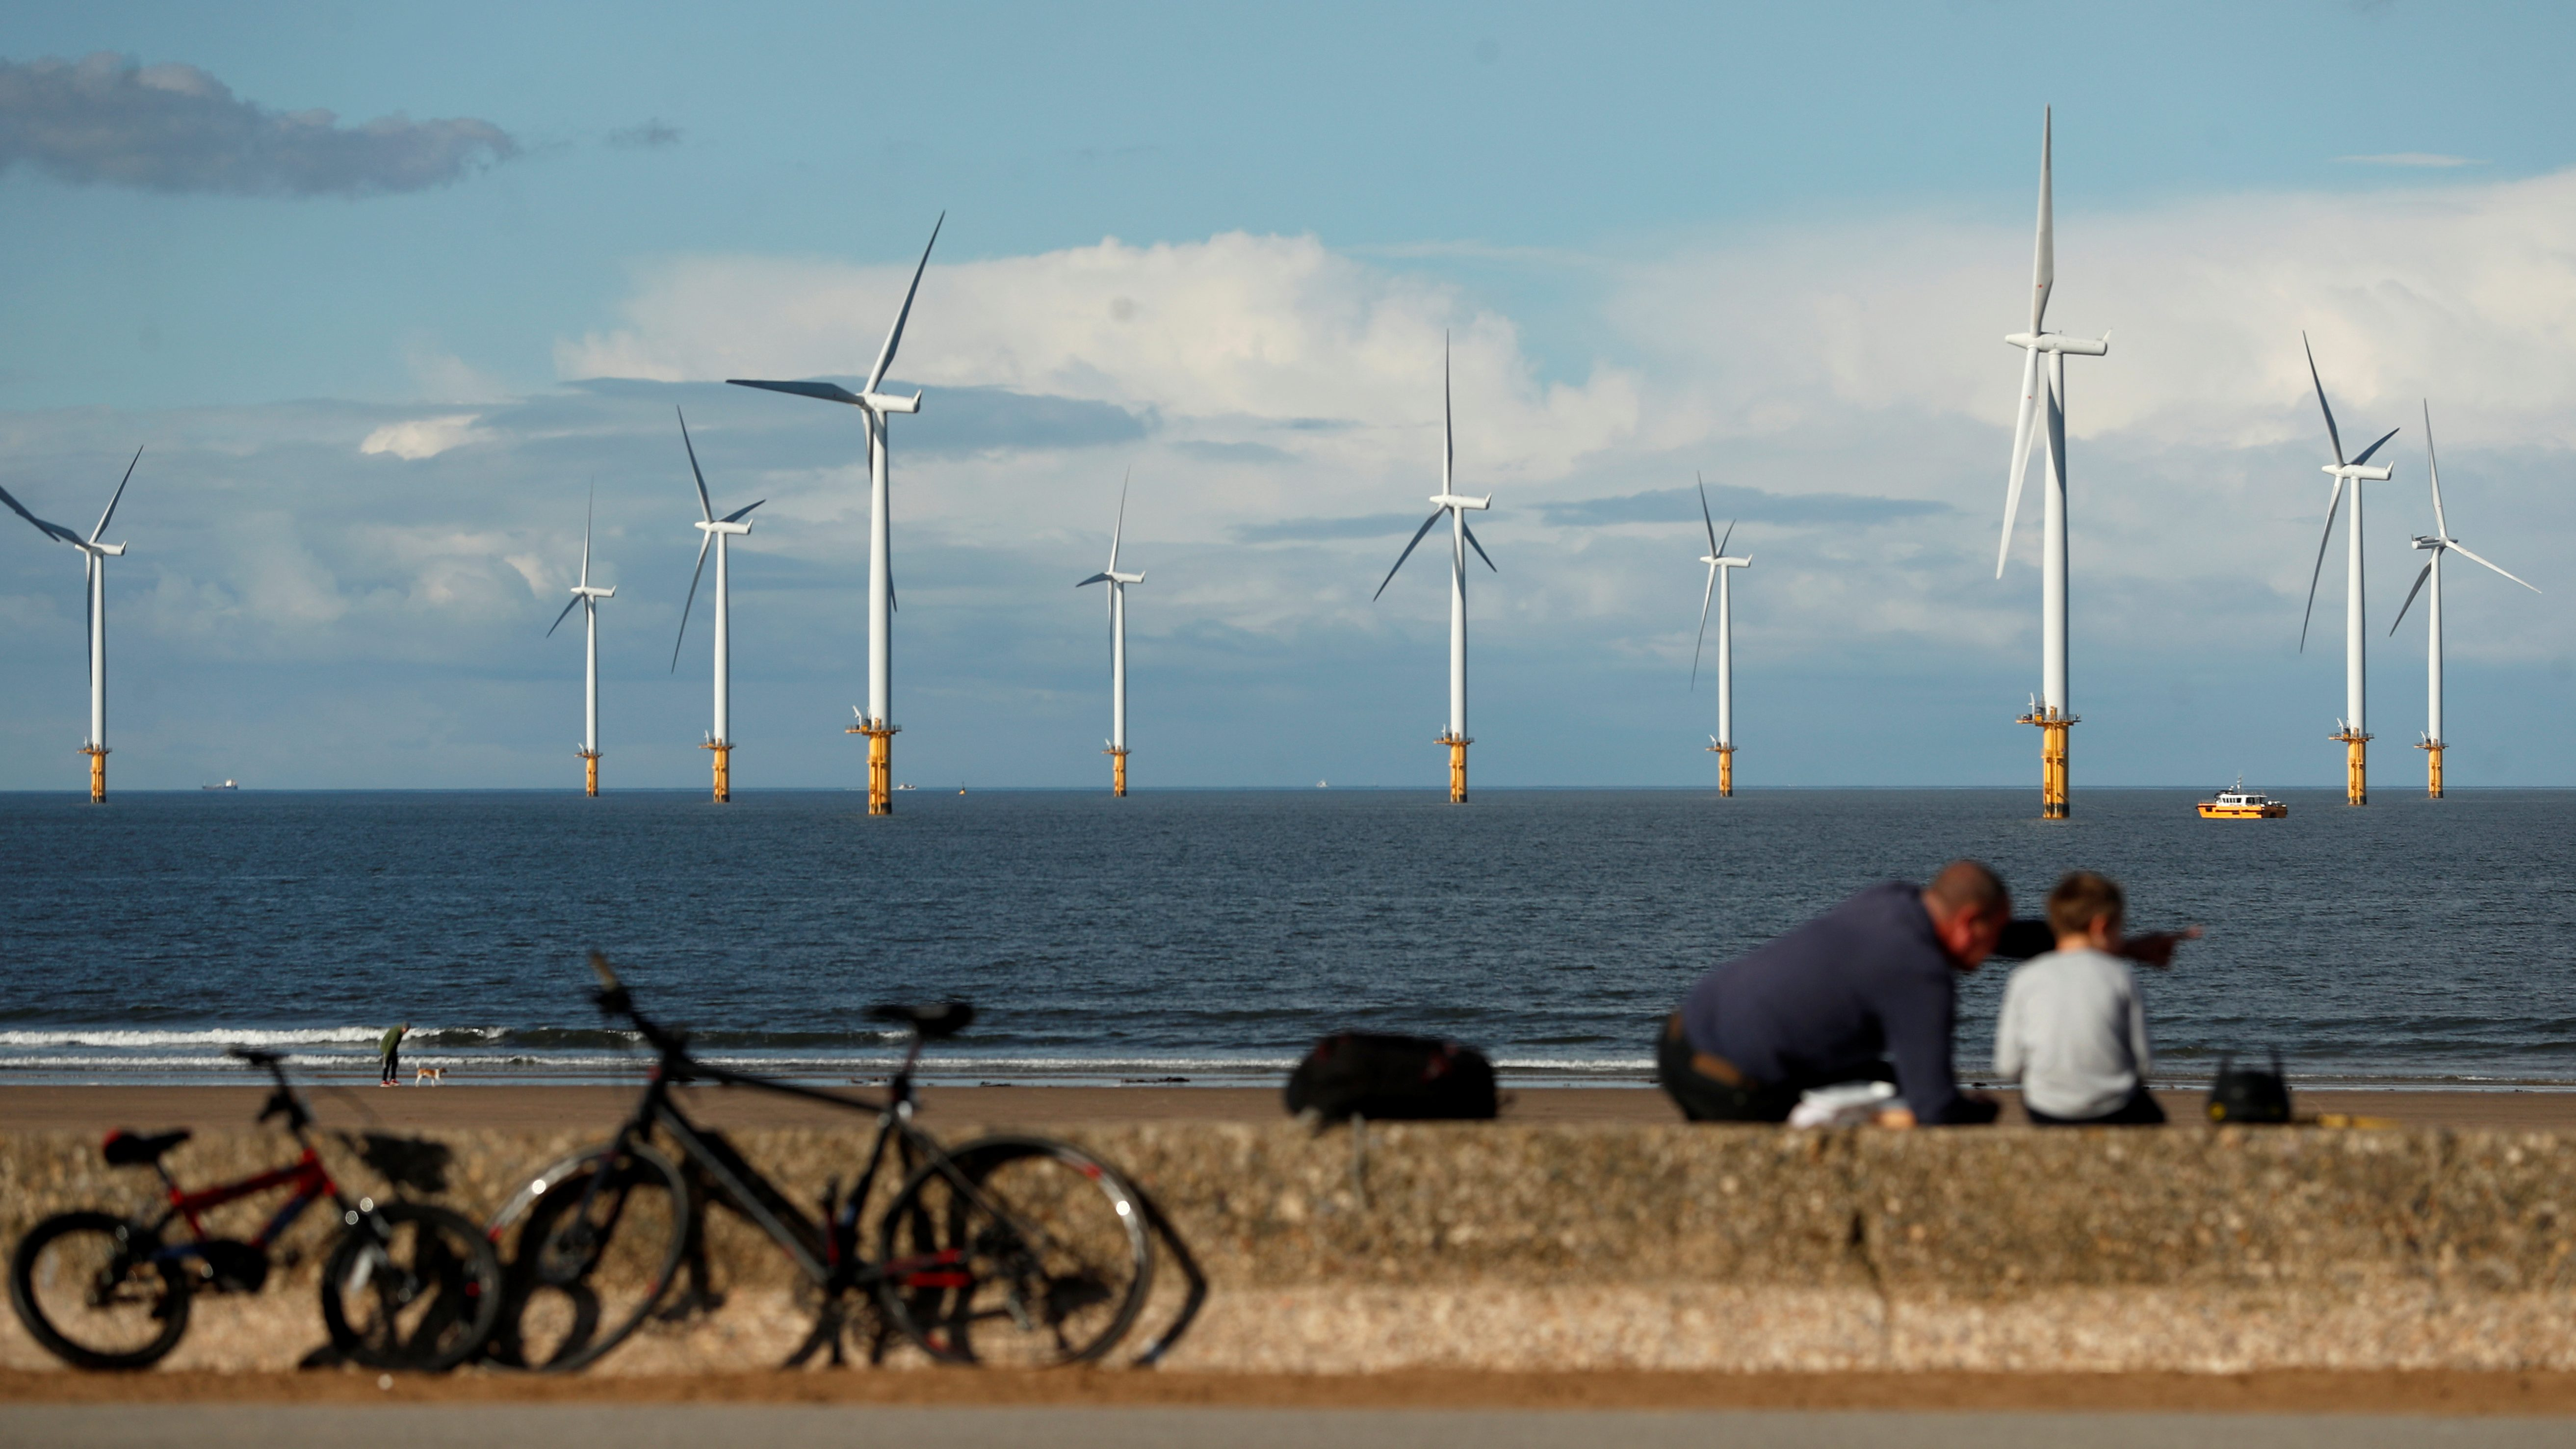 A man and child sitting with bicycles at a coastline near an offshore wind farm.